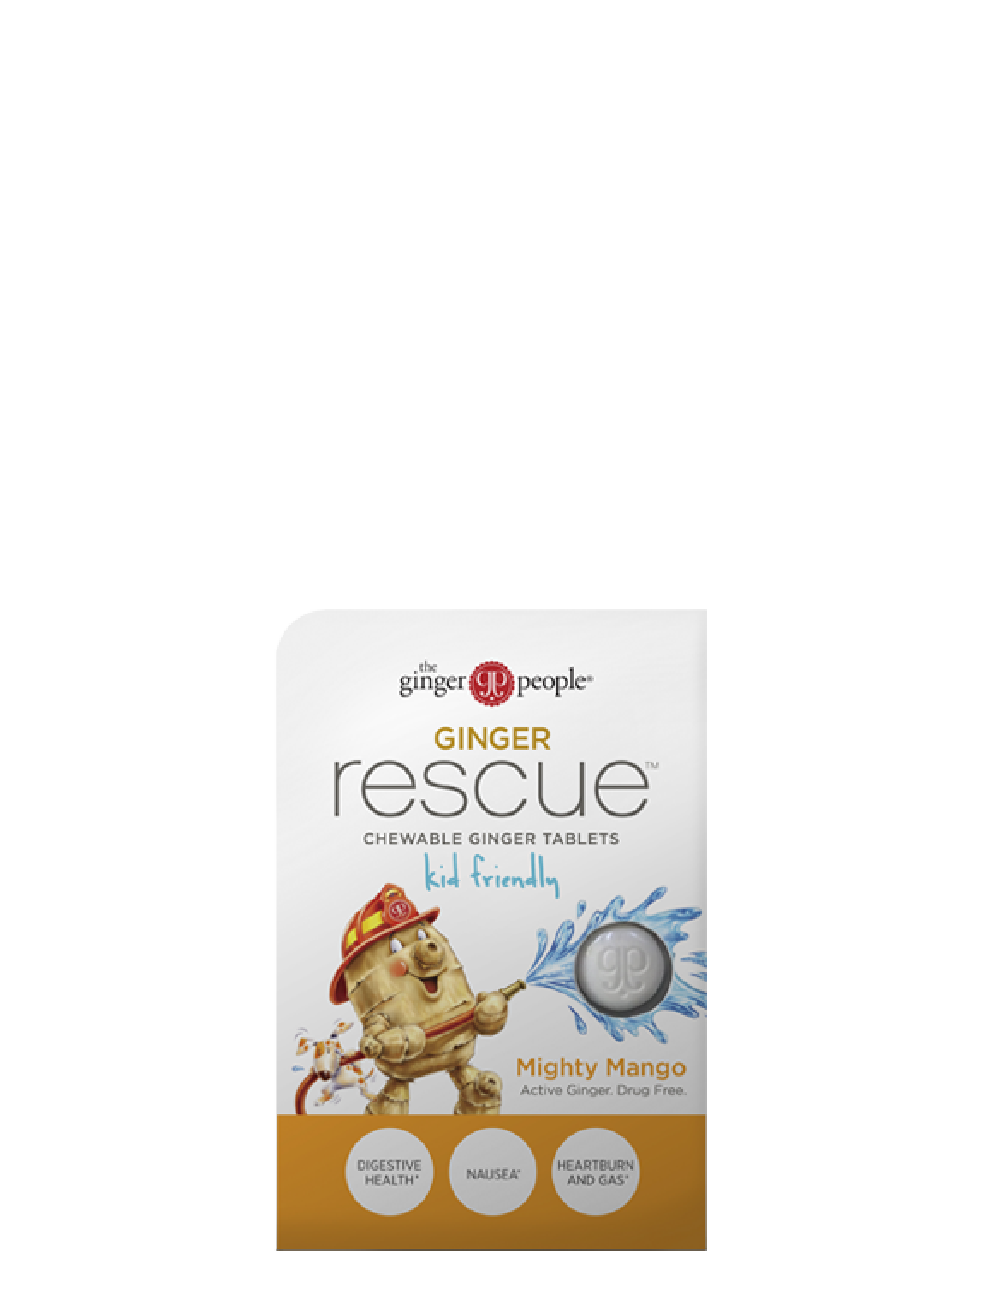 Ginger Rescue Chewable Ginger Tablets Mighty Mango - 10 x 24 tablets